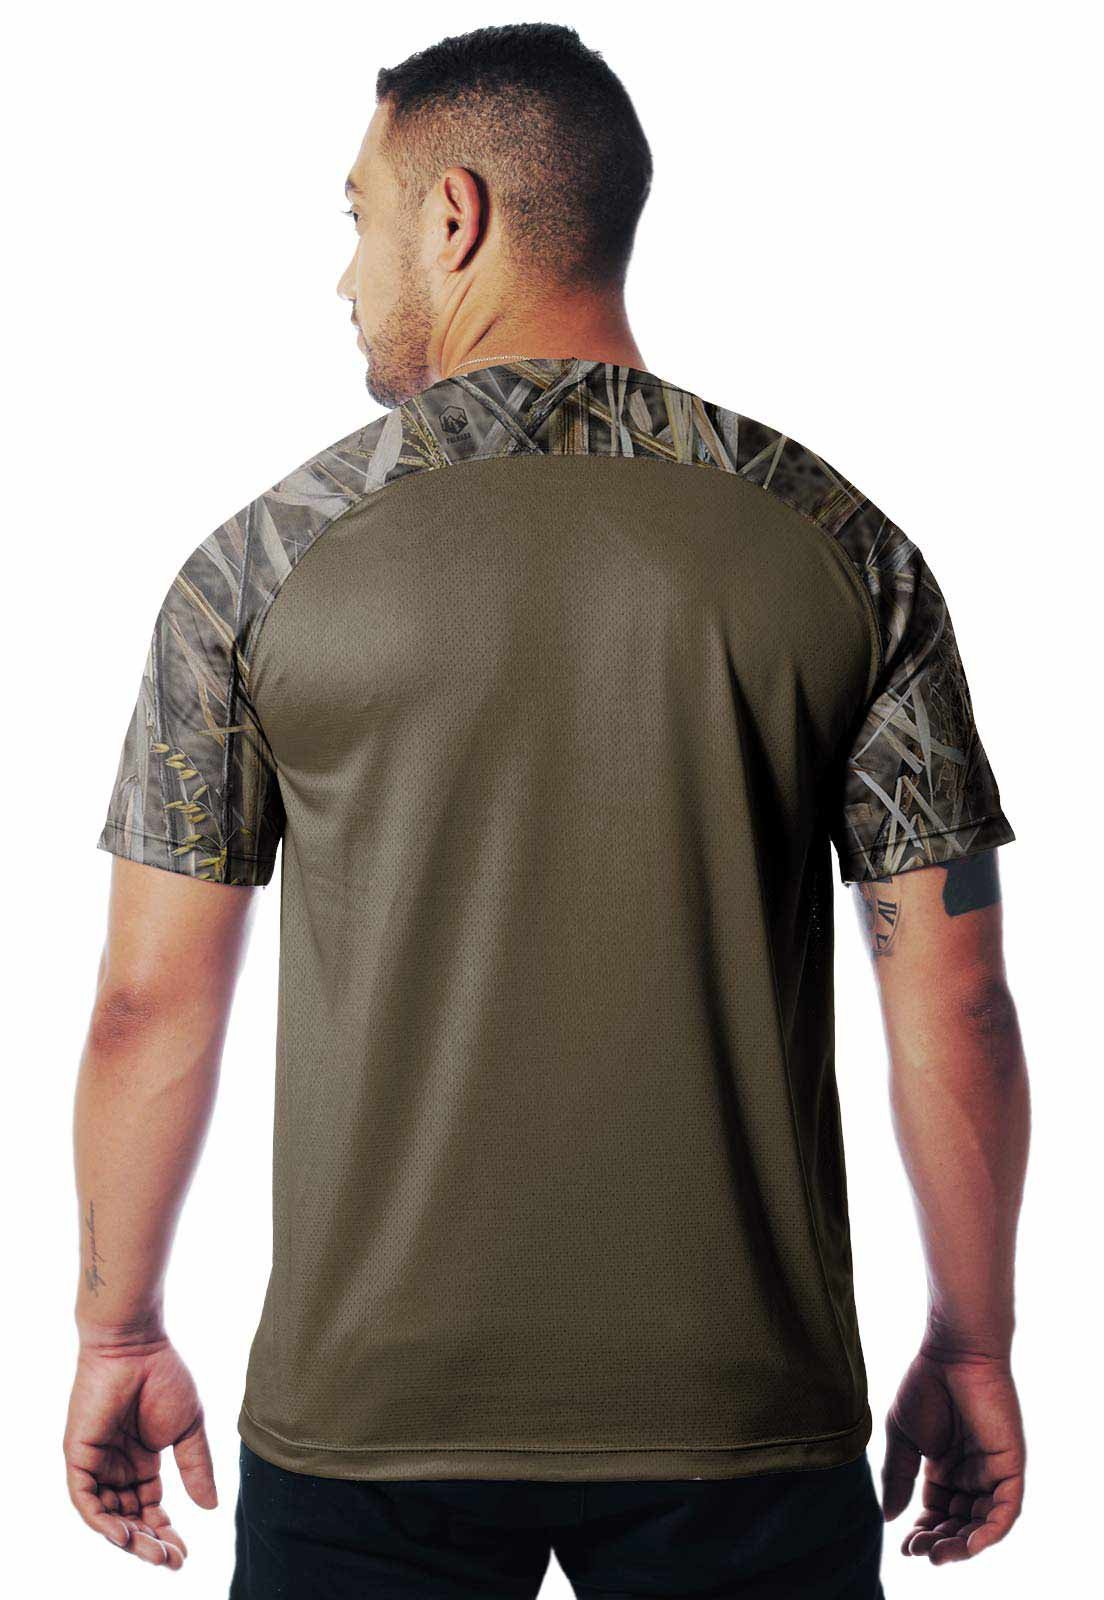 CAMISETA CAMUFLADA PALHADA DIA 01 MANGA CURTA MASCULINA  - REAL HUNTER OUTDOORS